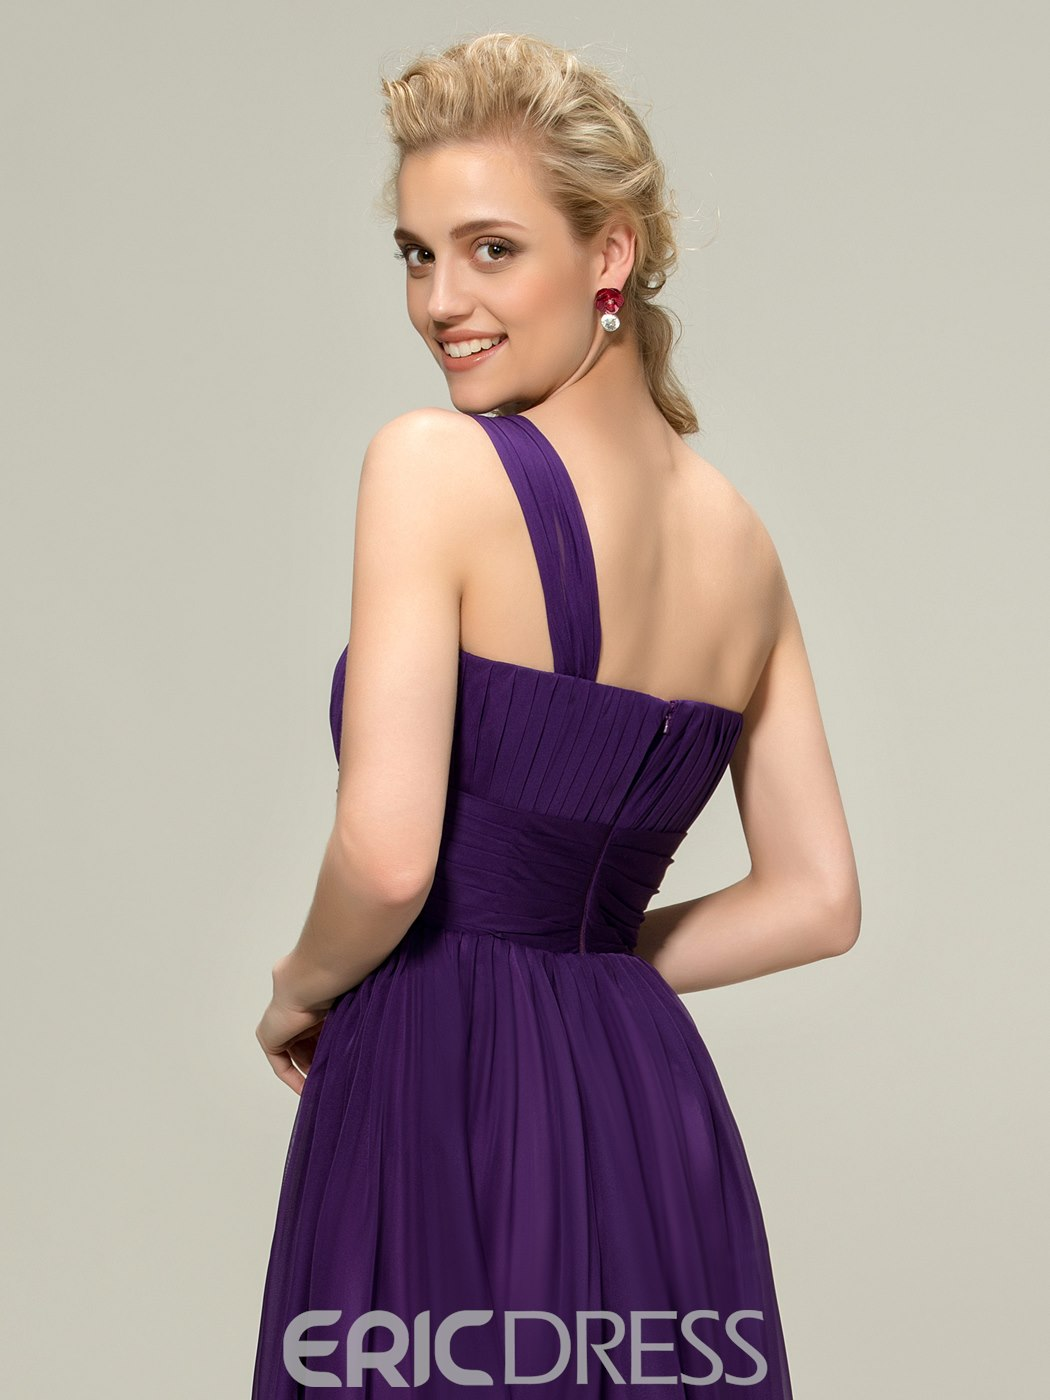 Ericdress Concise One-Shoulder Ruched Knee-Length Bridesmaid Dress